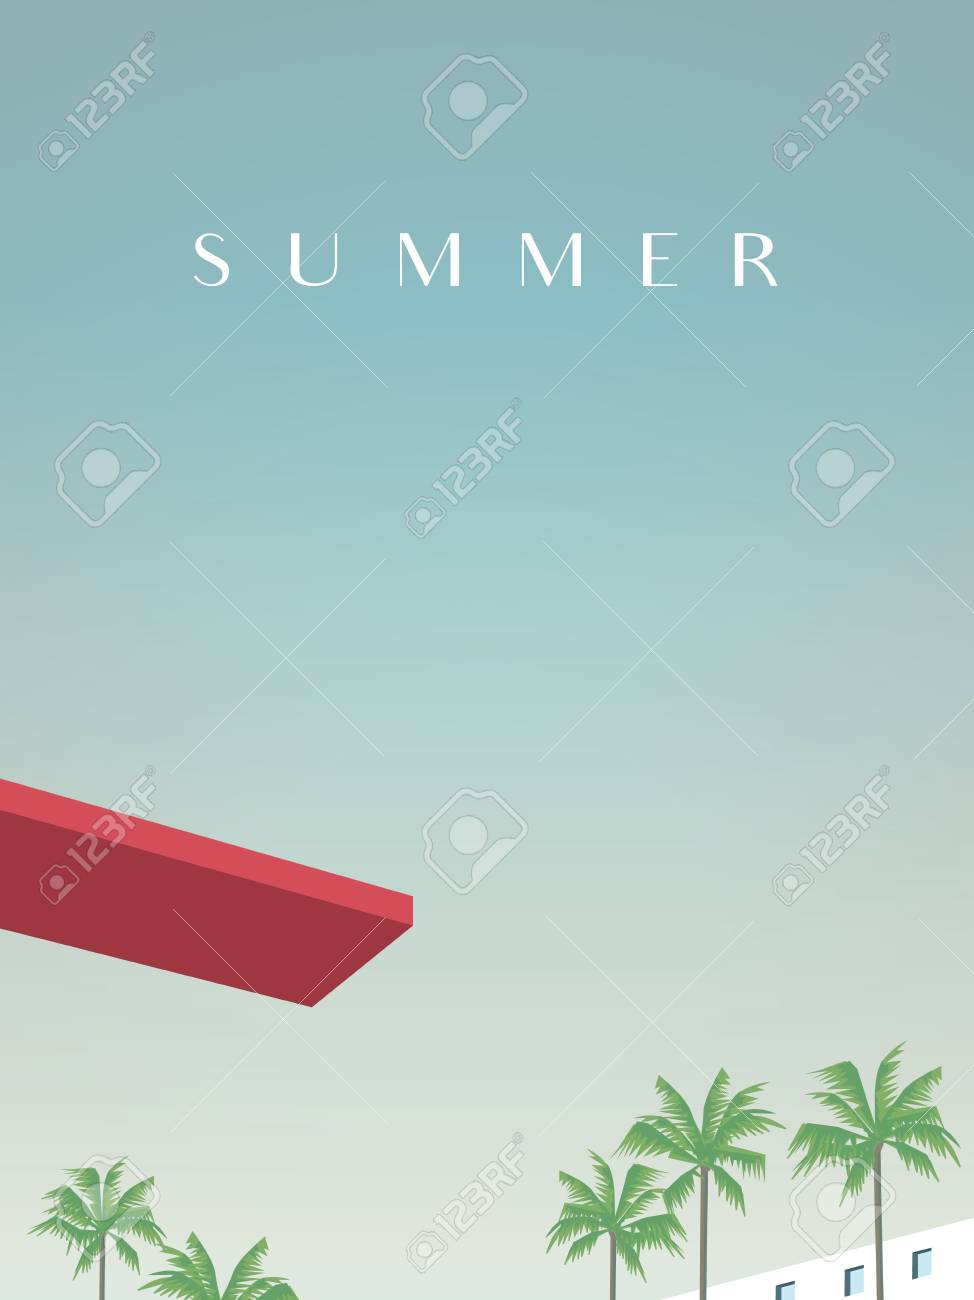 Summer retro vintage poster vector template with jumping board..